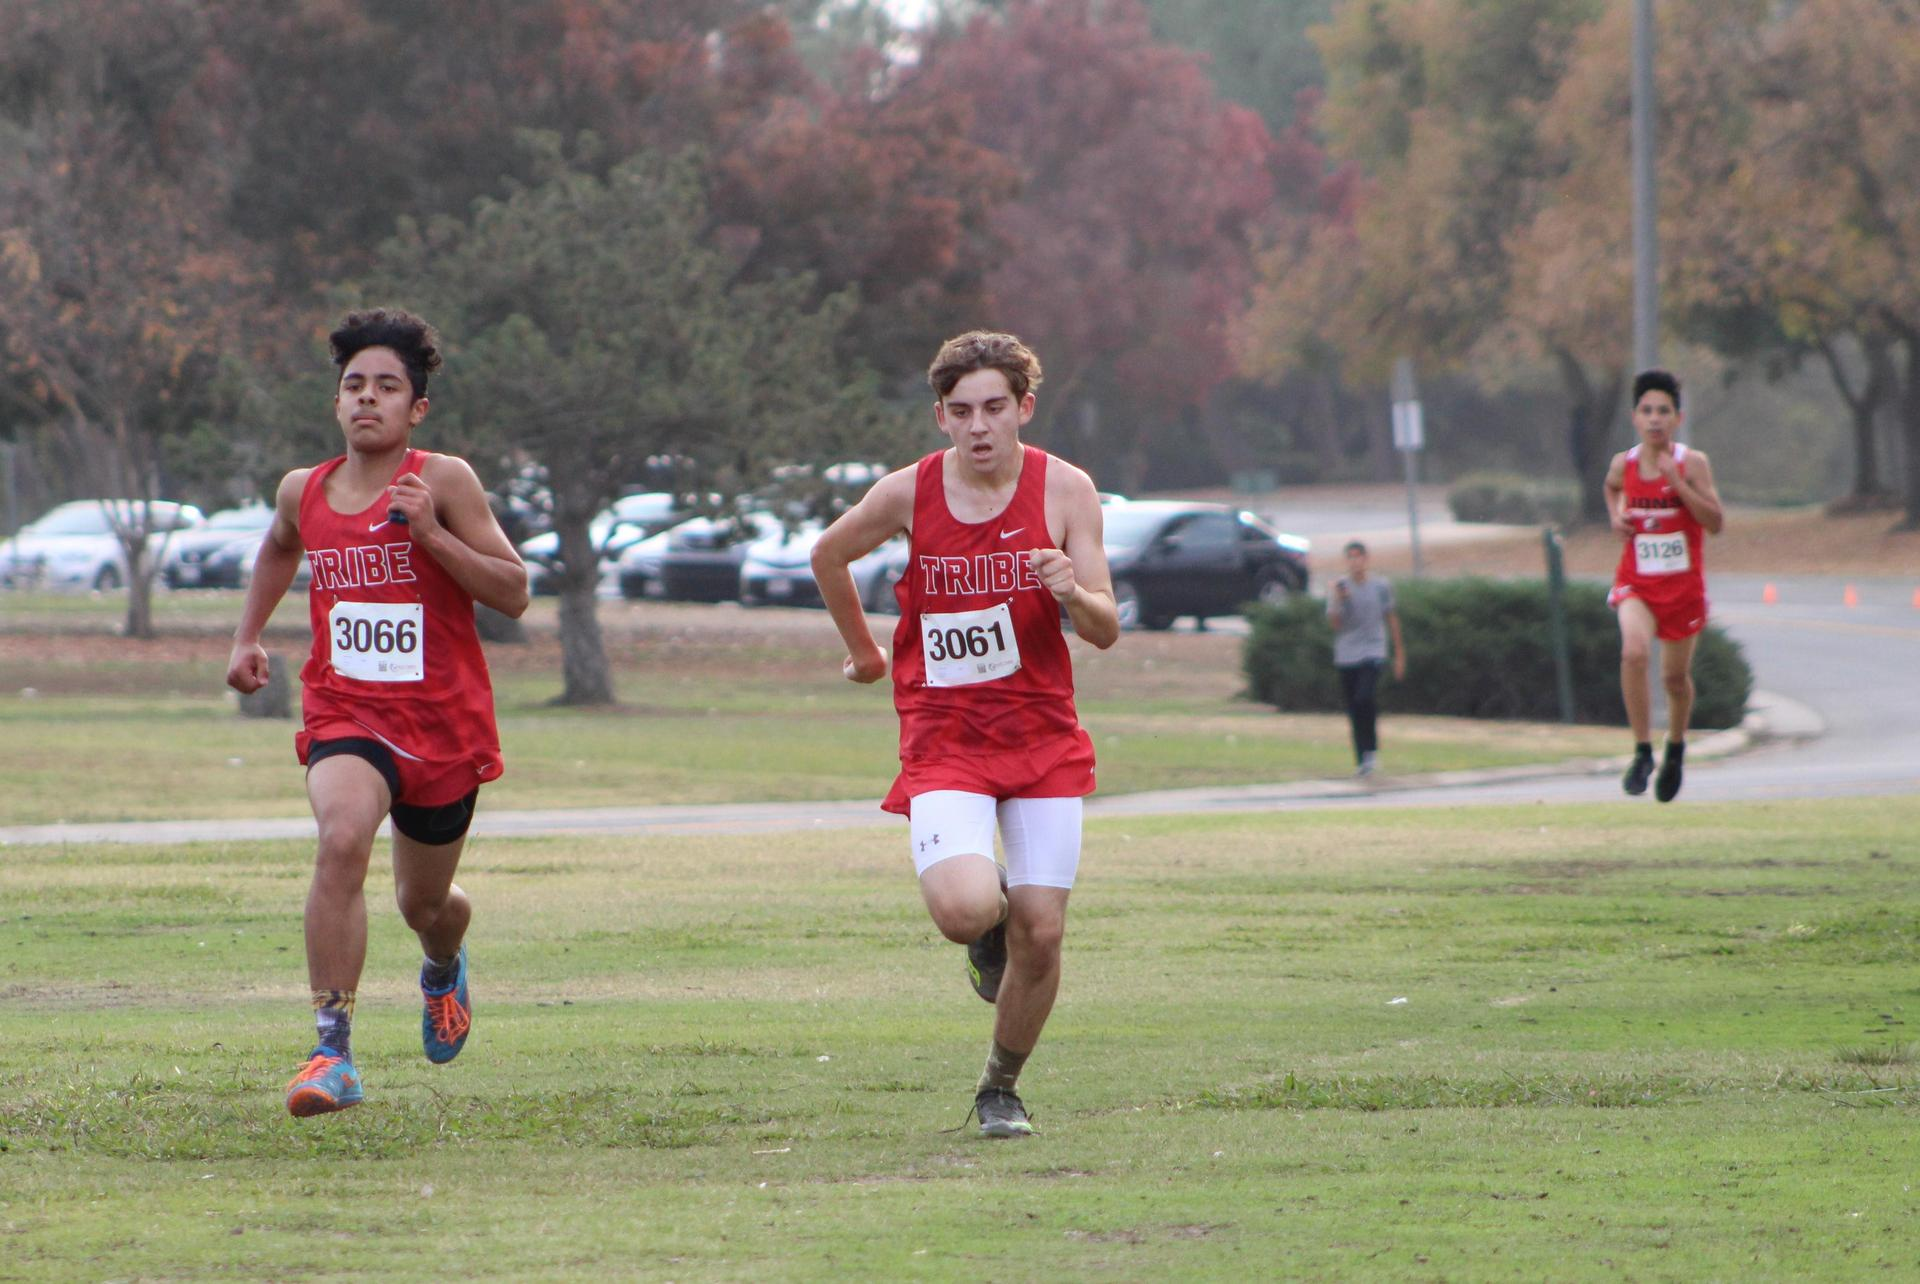 Carson Borba and Angel Gonzales finishing